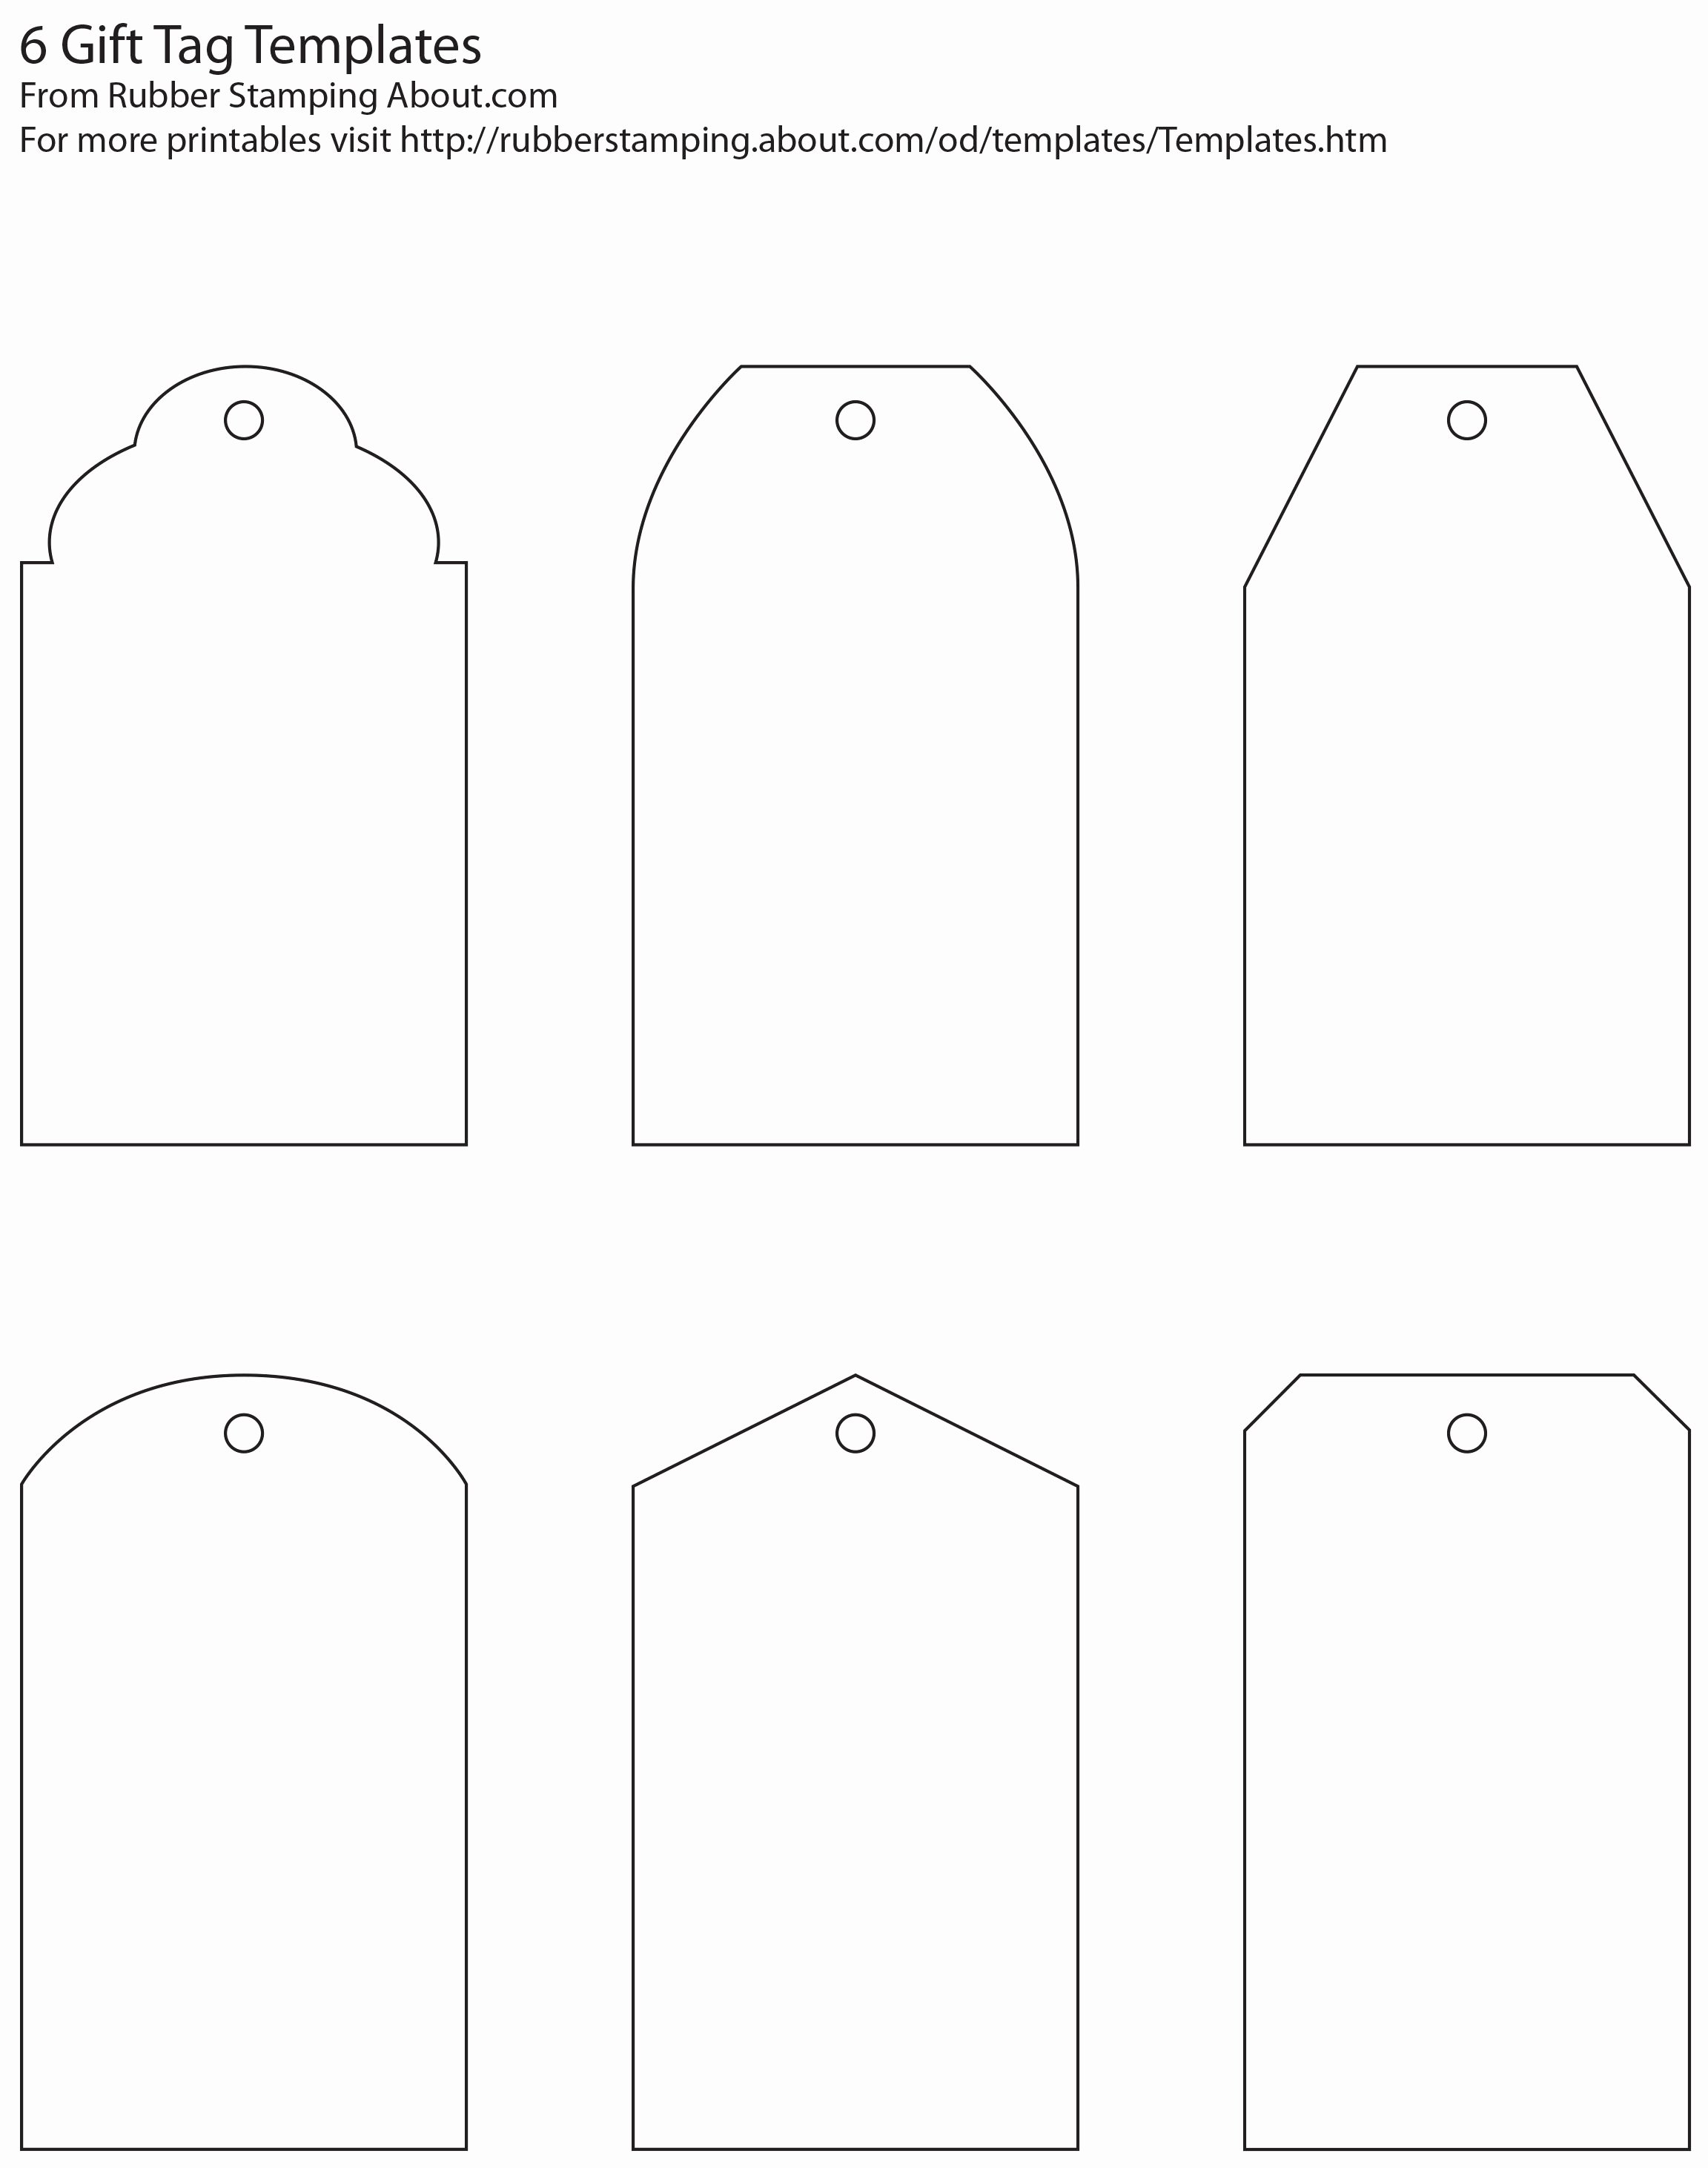 Free Price Tag Template Best Of Make Your Own Custom Gift Tags with these Free Printable